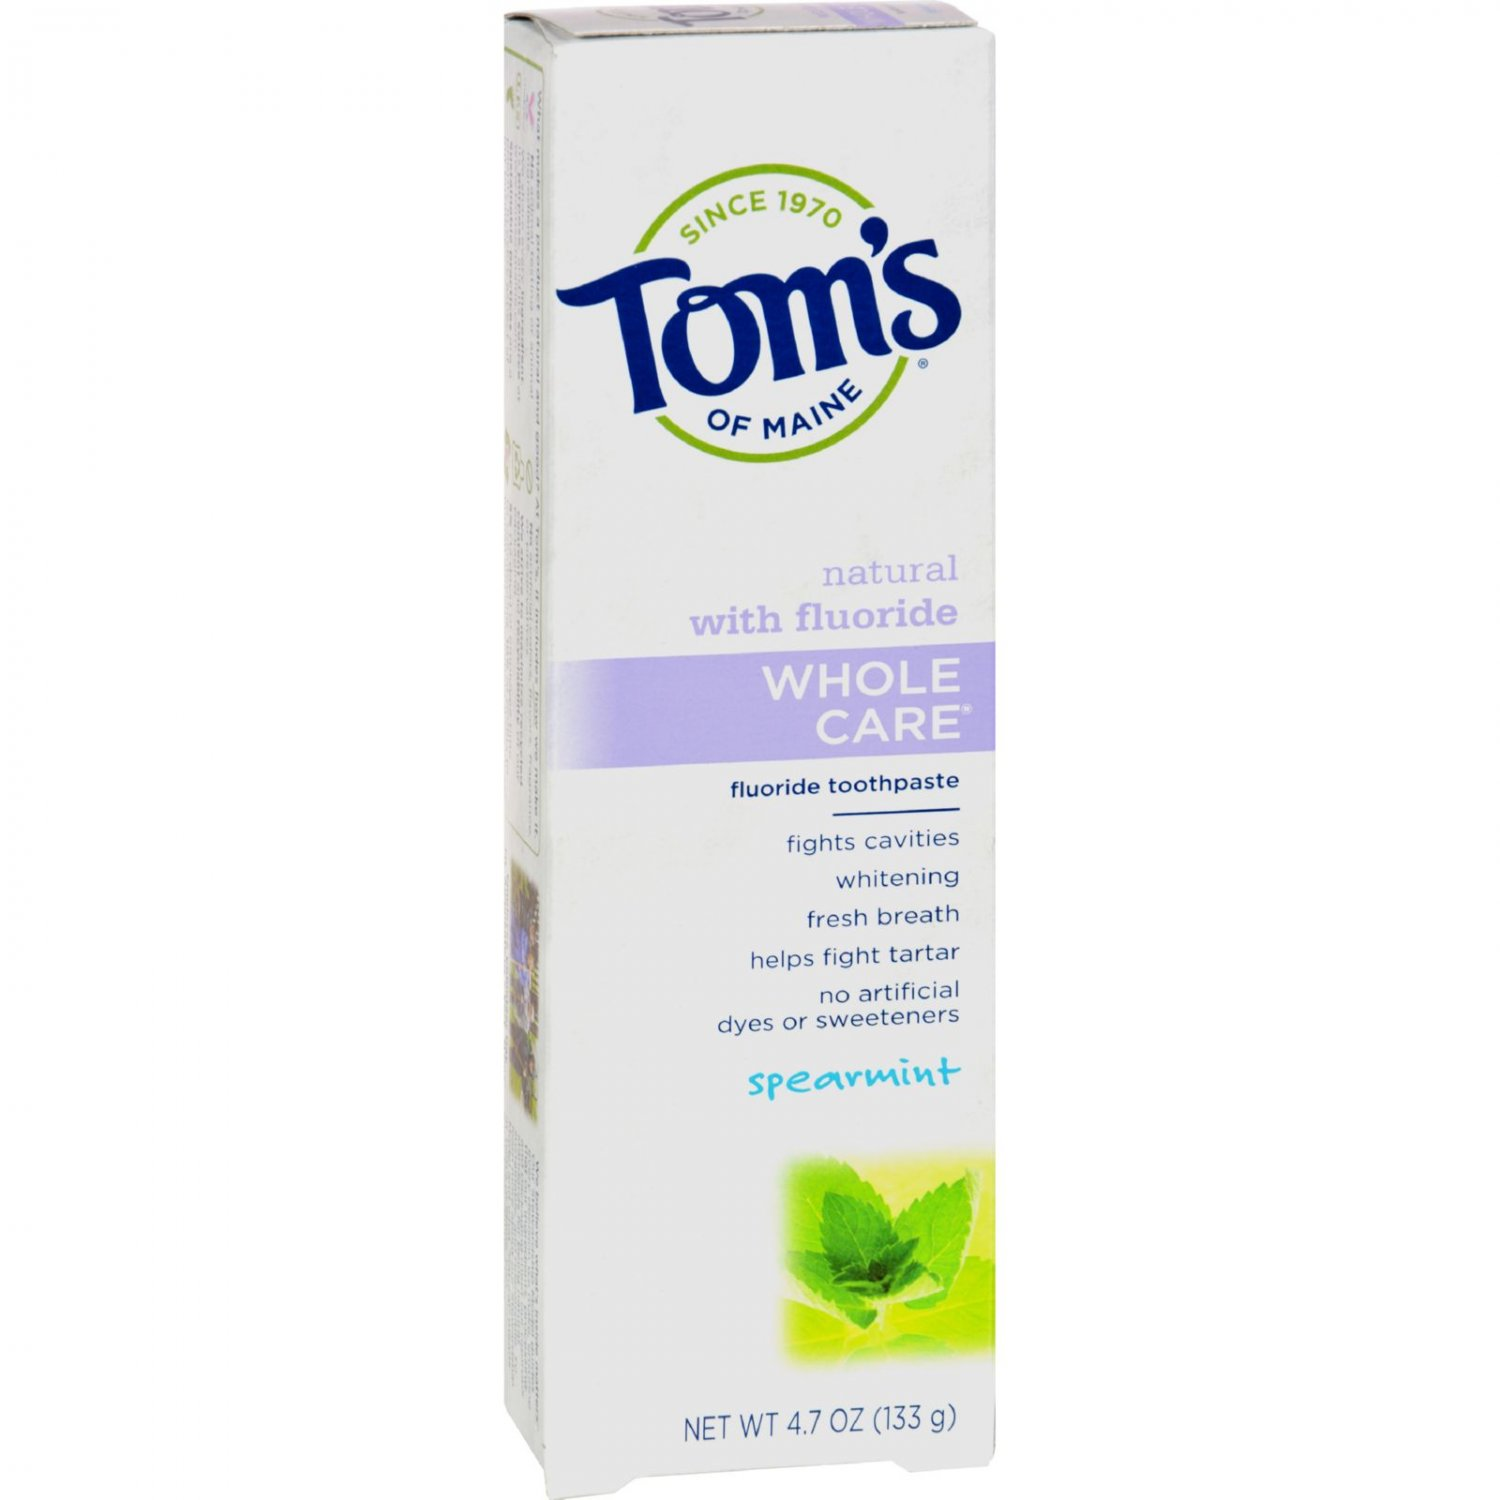 Tom's of Maine Whole Care Toothpaste Spearmint - 4.7 oz - Case of 6